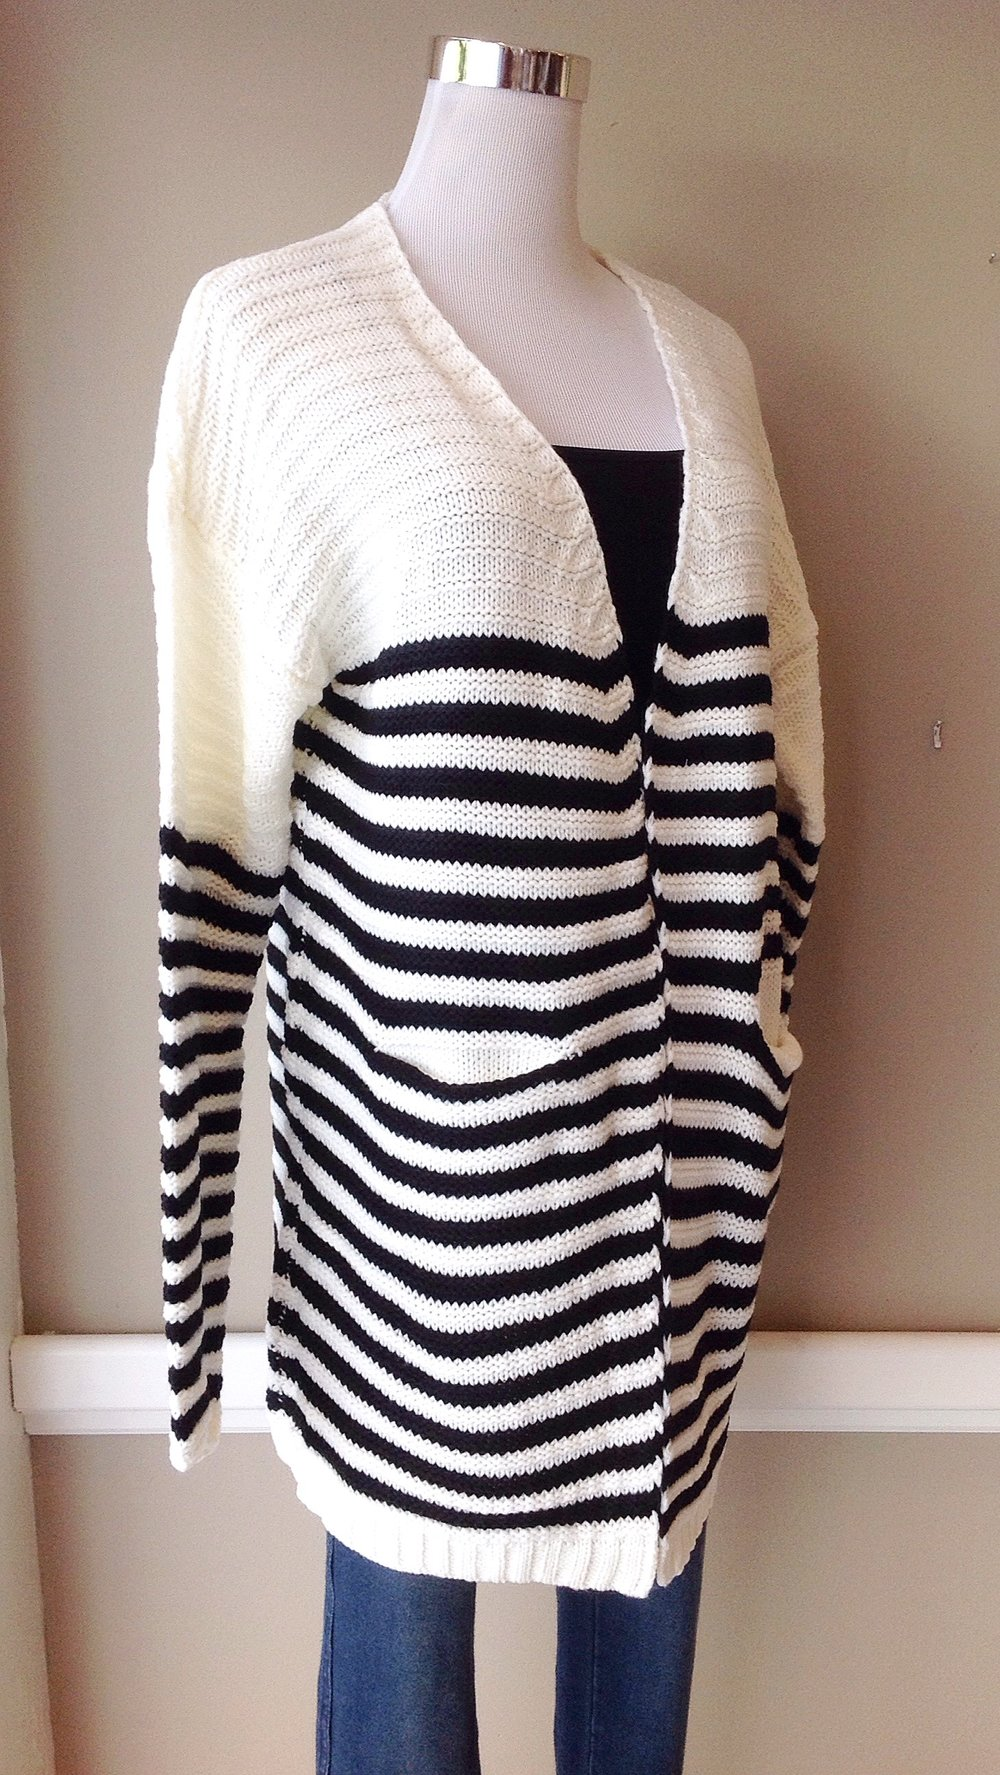 Chunky ivory and black stripe cardigan with pockets, $38